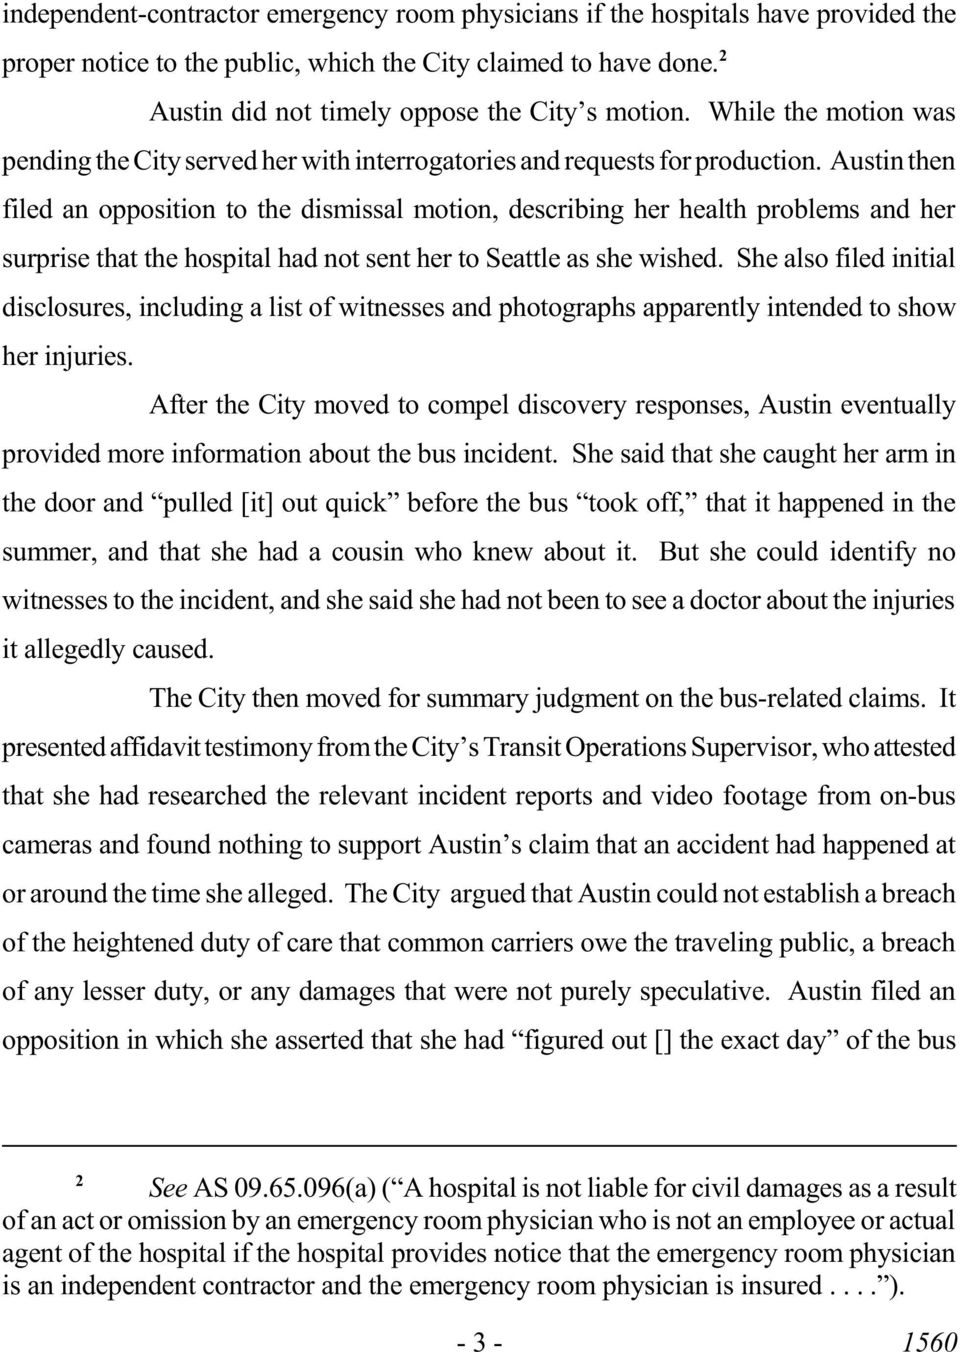 Austin then filed an opposition to the dismissal motion, describing her health problems and her surprise that the hospital had not sent her to Seattle as she wished.